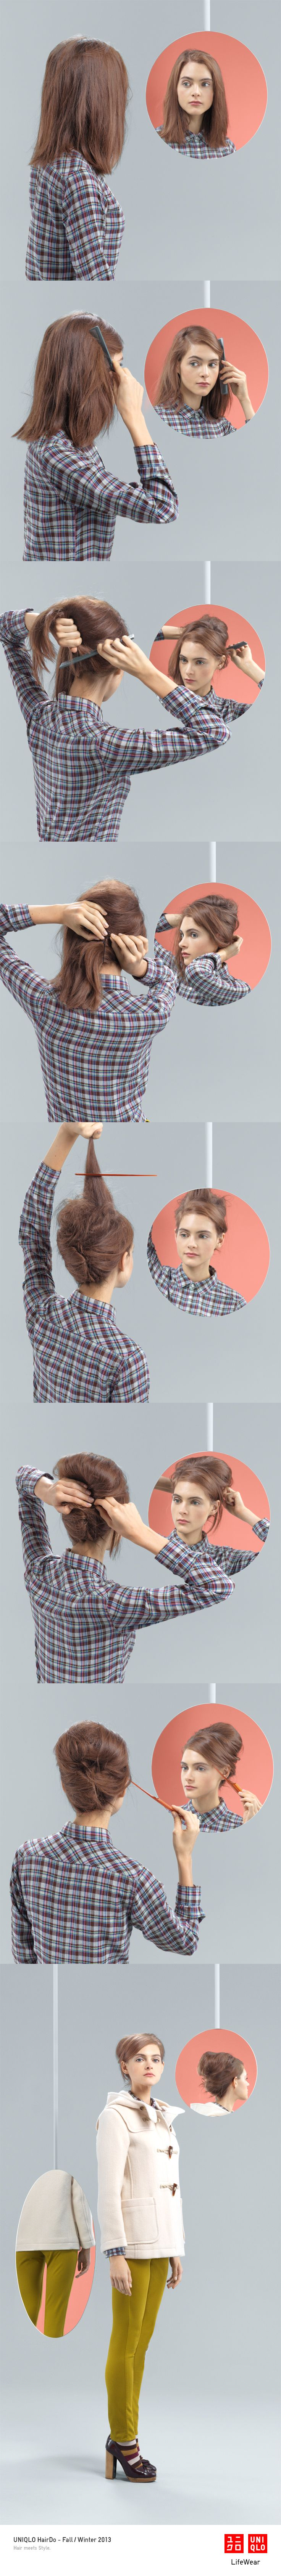 """THE SIDE BEEHIVE"" : A cotton flannel shirt works well with this modern take on a classic hair style."